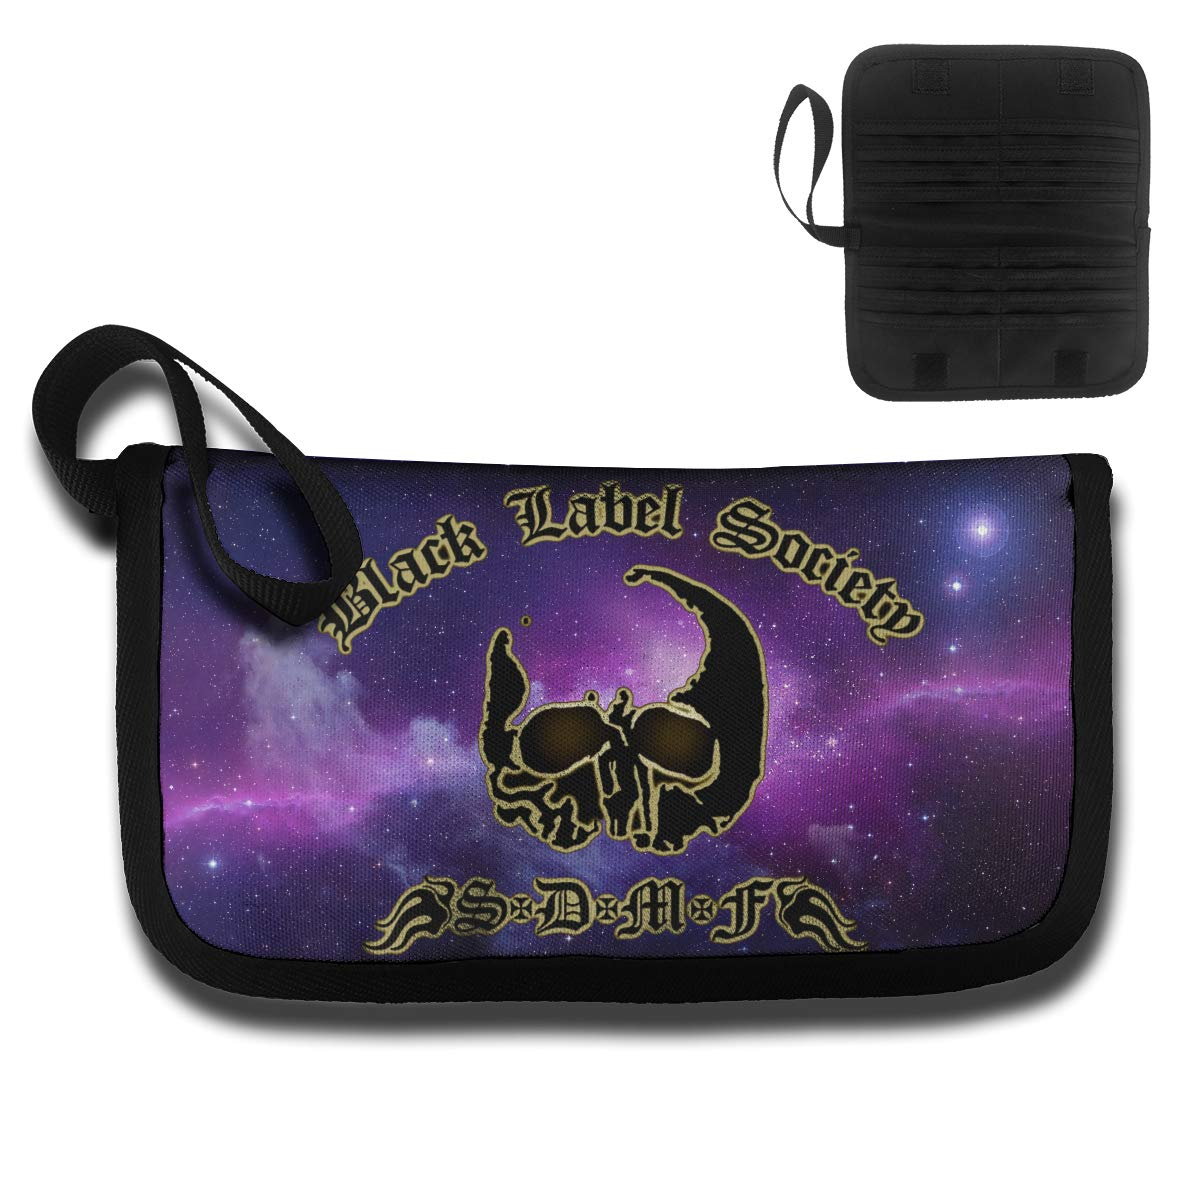 4.6oz KELTY S LANCE Black Label Society Convenient Unisex Card Bag,with A Handle,Travel Wallet